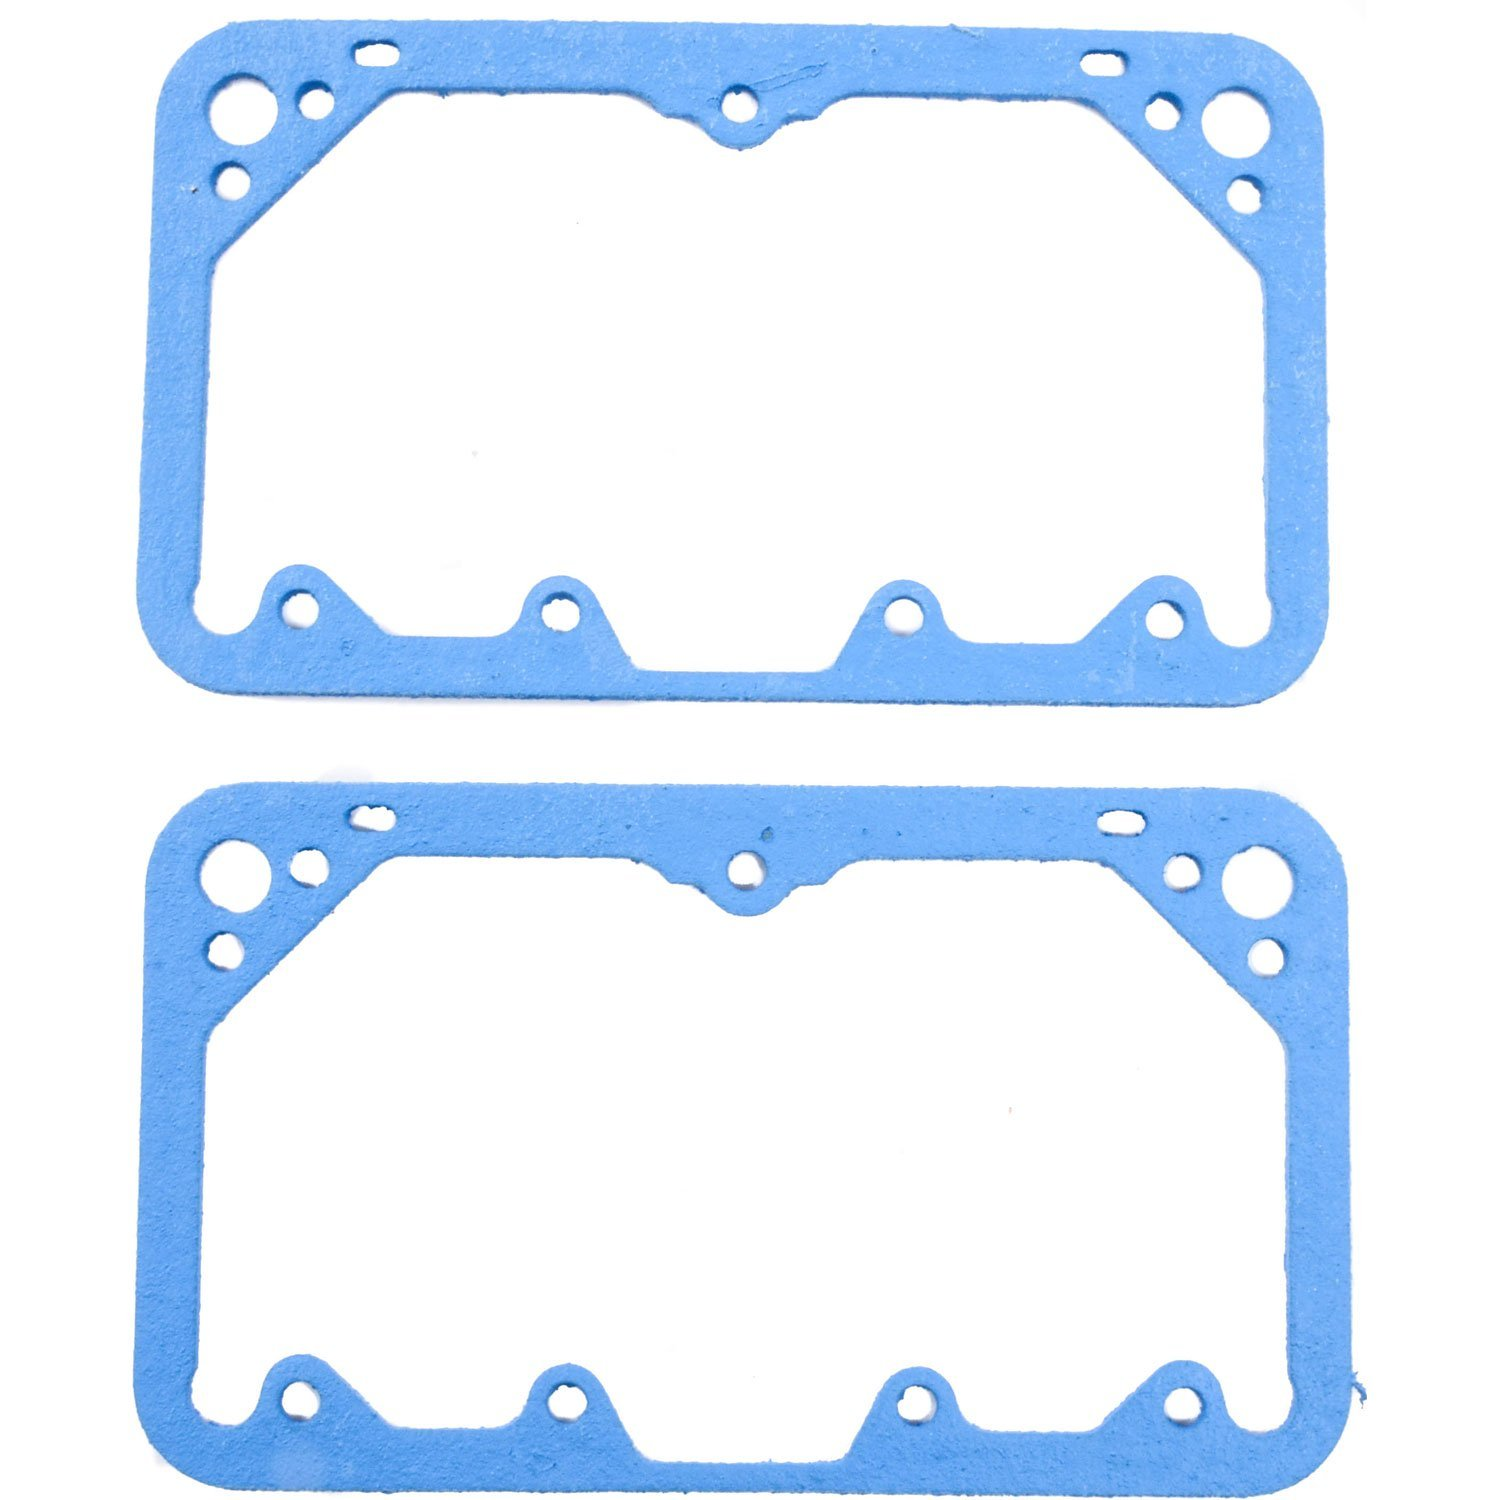 Holley Performance Fuel Bowl Gasket; For Models 2300/4150/4160/4500 Two Circuit (108-83-2)